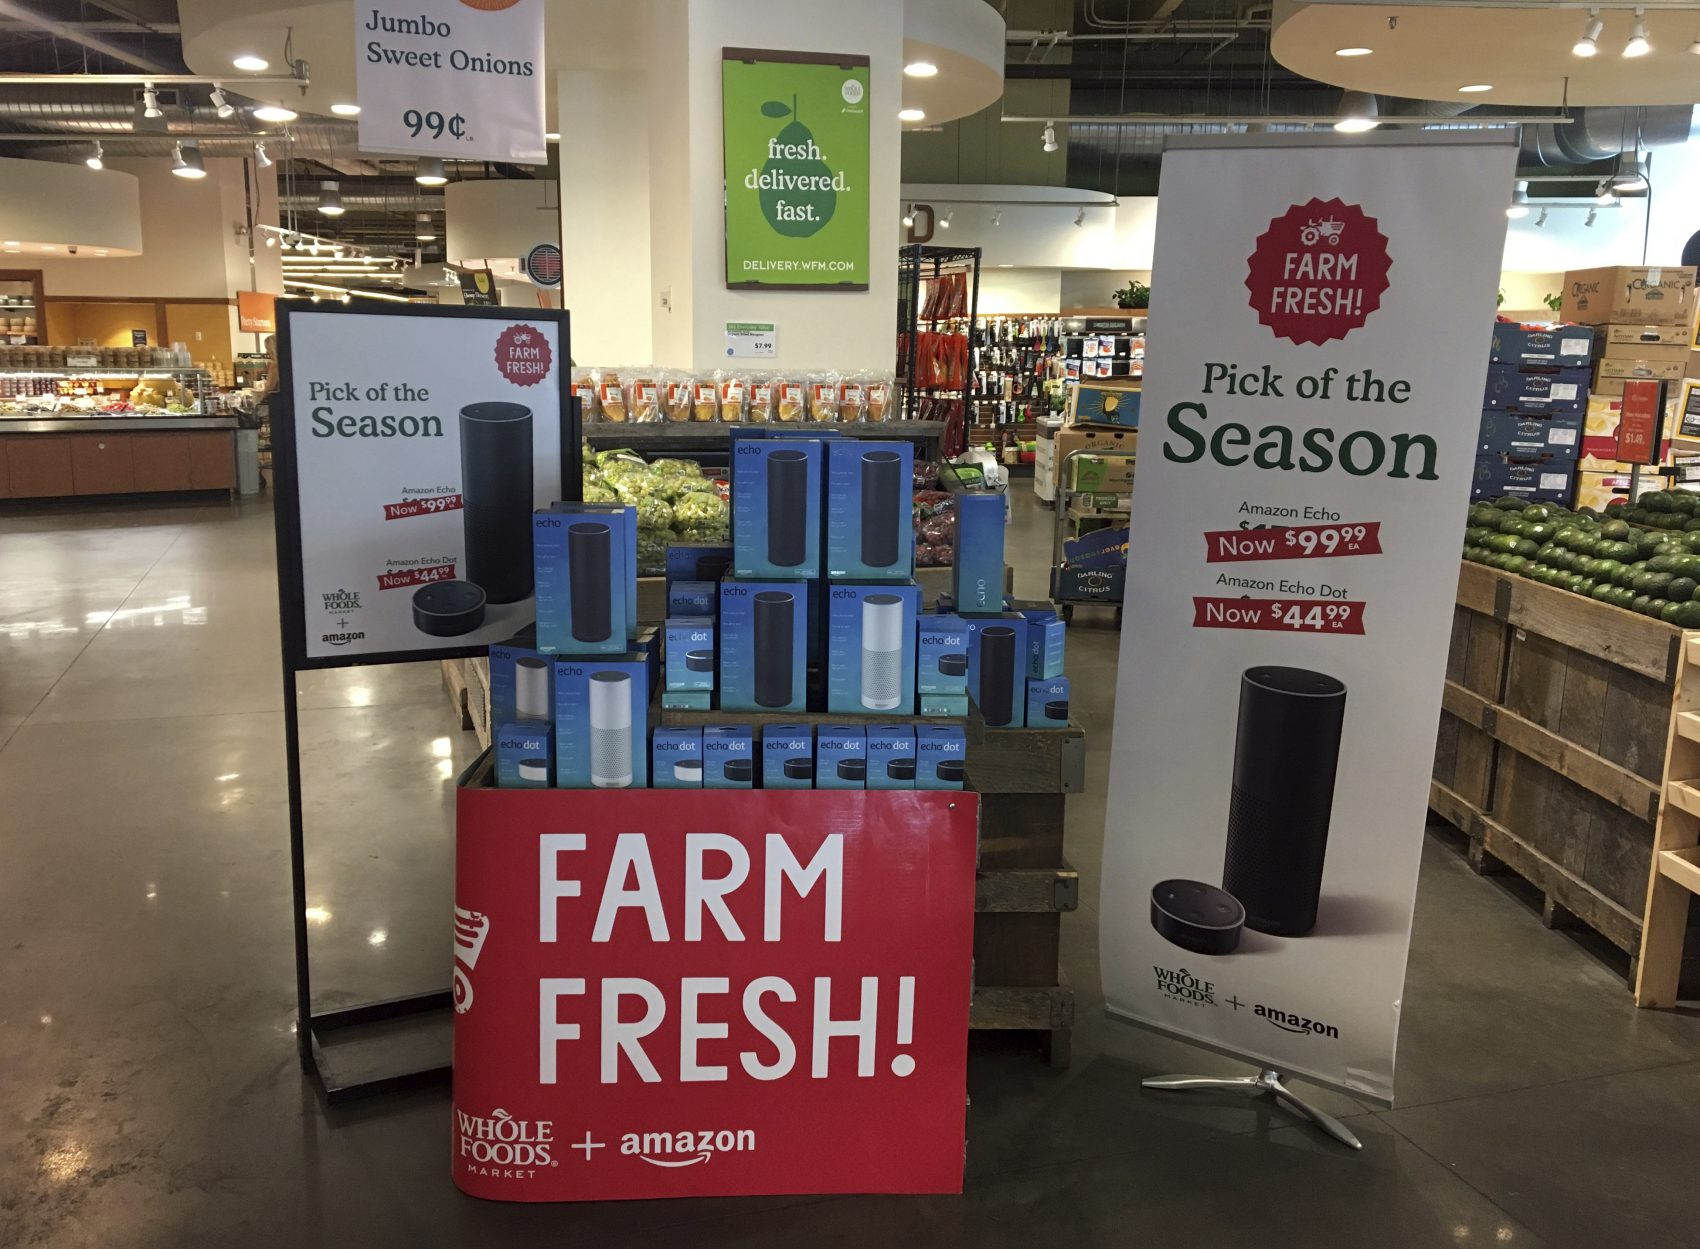 Amazon's Echo and Echo Dot appear on sale at a Whole Foods Market in New York, Monday, Aug. 28, 2017. Amazon has completed its $13.7 billion takeover of organic grocer Whole Foods, and the e-commerce giant is wasting no time putting its stamp on the company. (Joseph Pisani/AP)